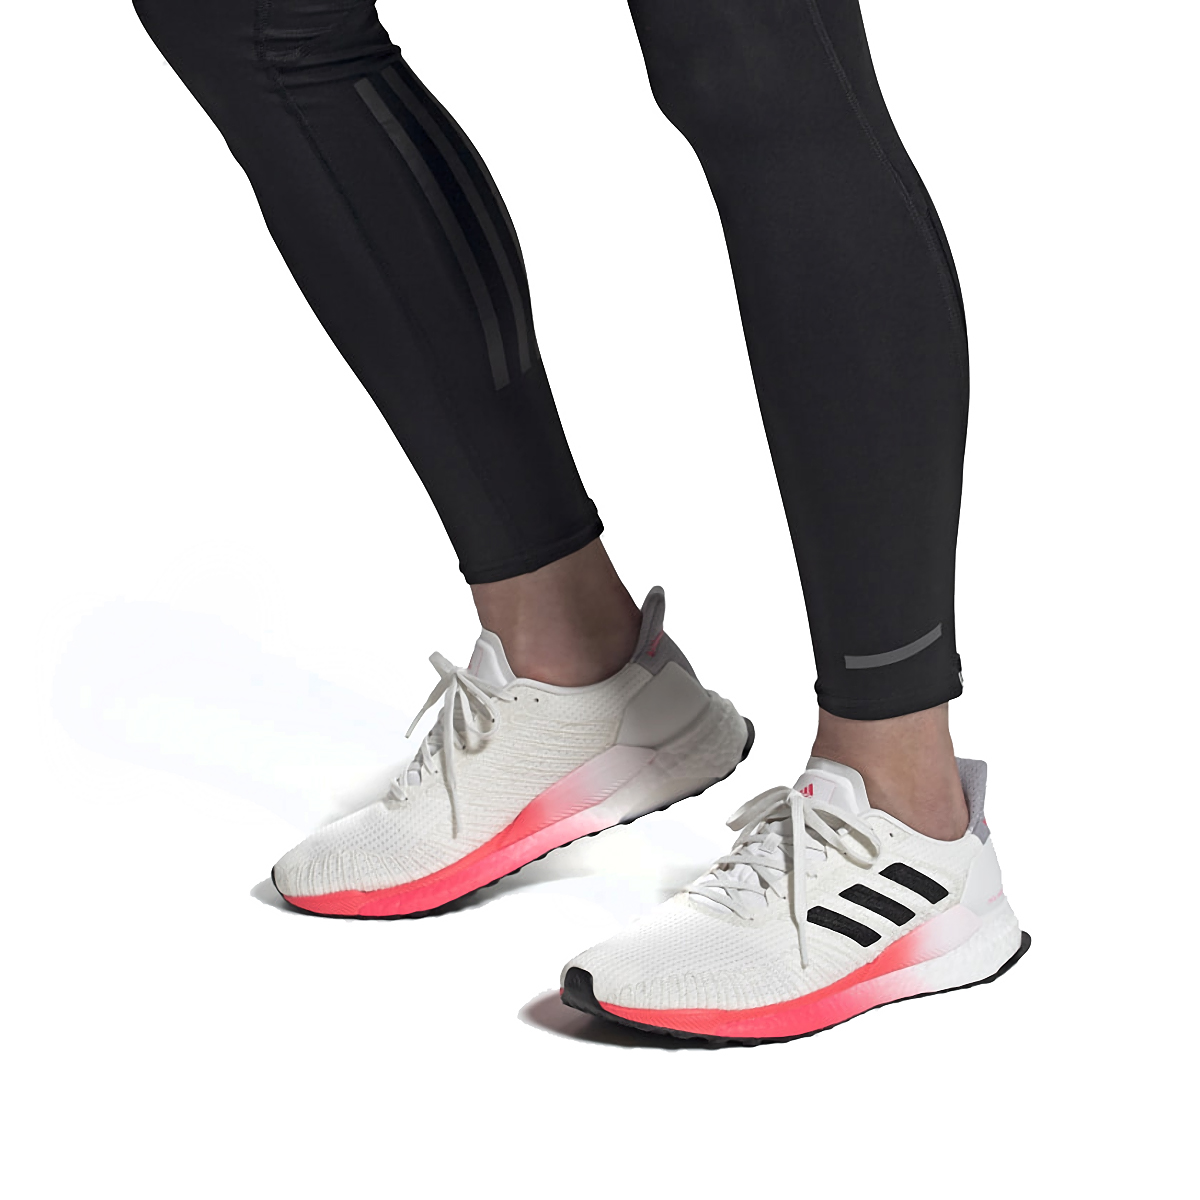 Men's Adidas SolarBOOST 19 Running Shoe - Color: Crystal White/Core Black/Copper Metallic - Size: 6.5 - Width: Regular, Crystal White/Core Black/Copper Metallic, large, image 5